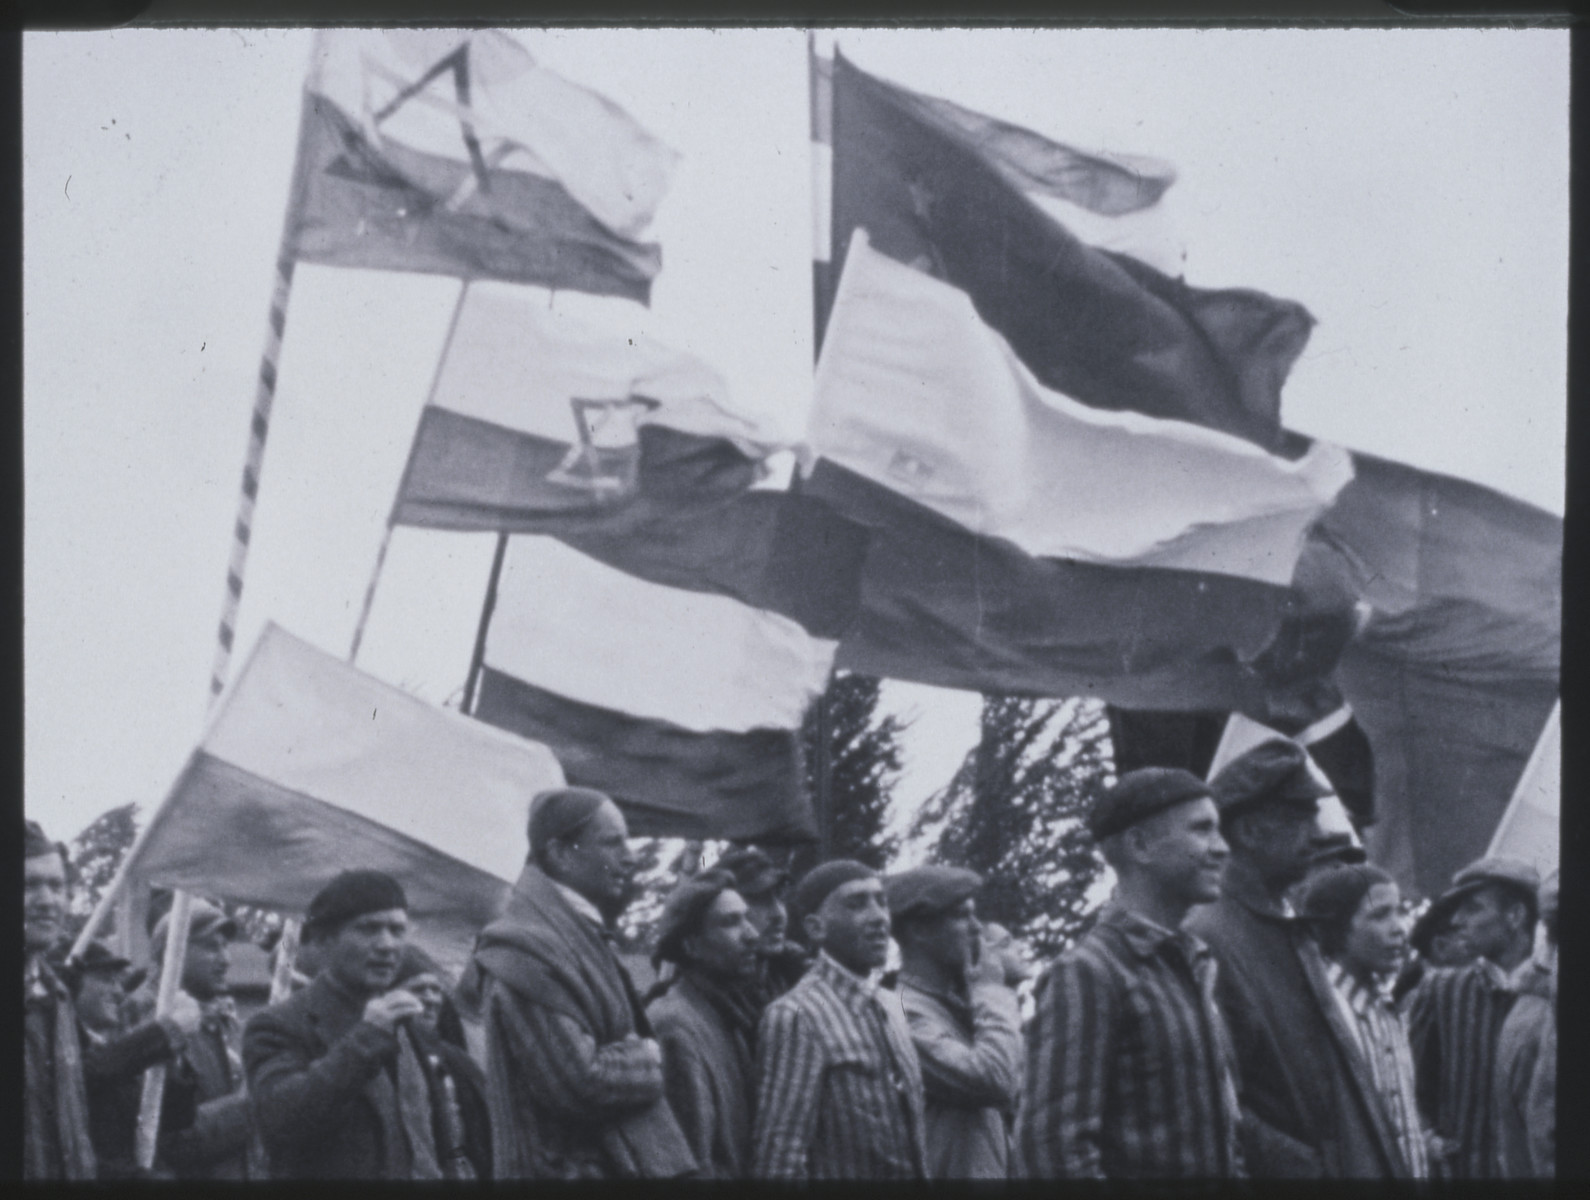 Survivors of the Dachau concentration camp gather for a memorial service after liberation.  They hold flags for various nationalities; Zionist flags can be seen on the left.